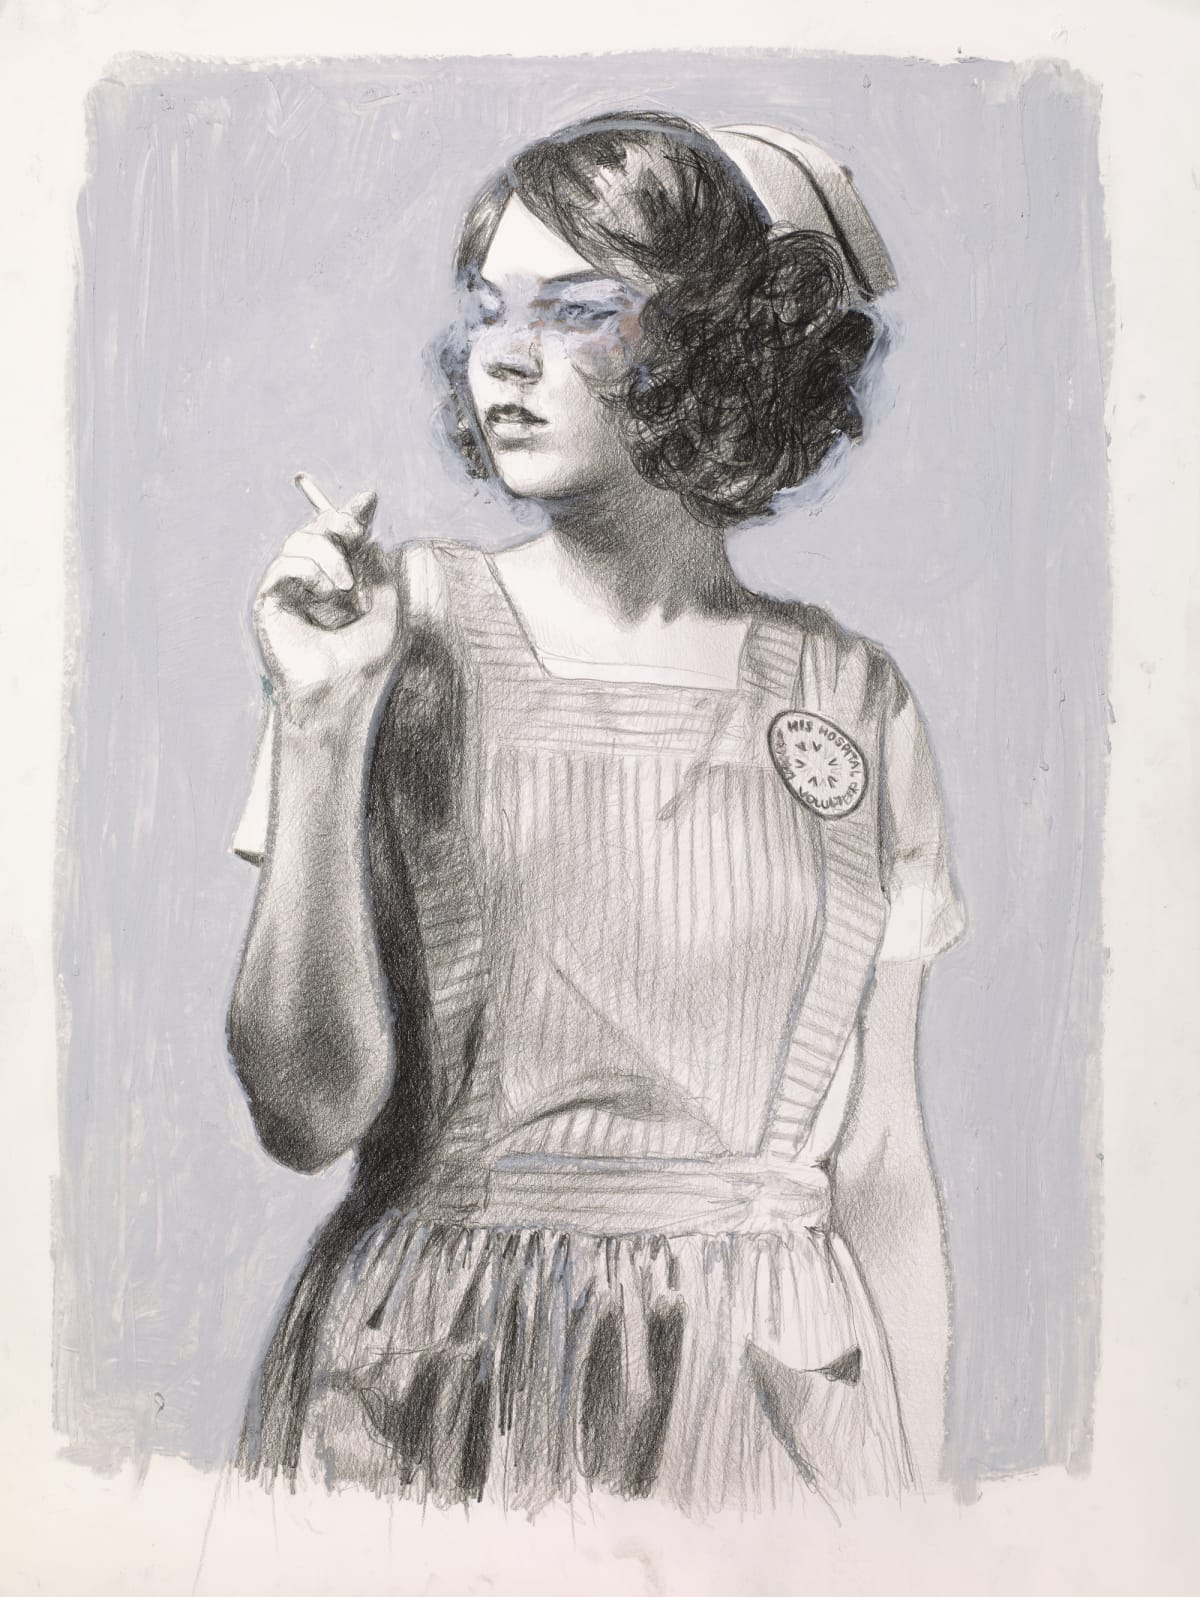 Mercedes Helnwein Candy striper smoking Pencil & oil pastel on paper 24 x 18